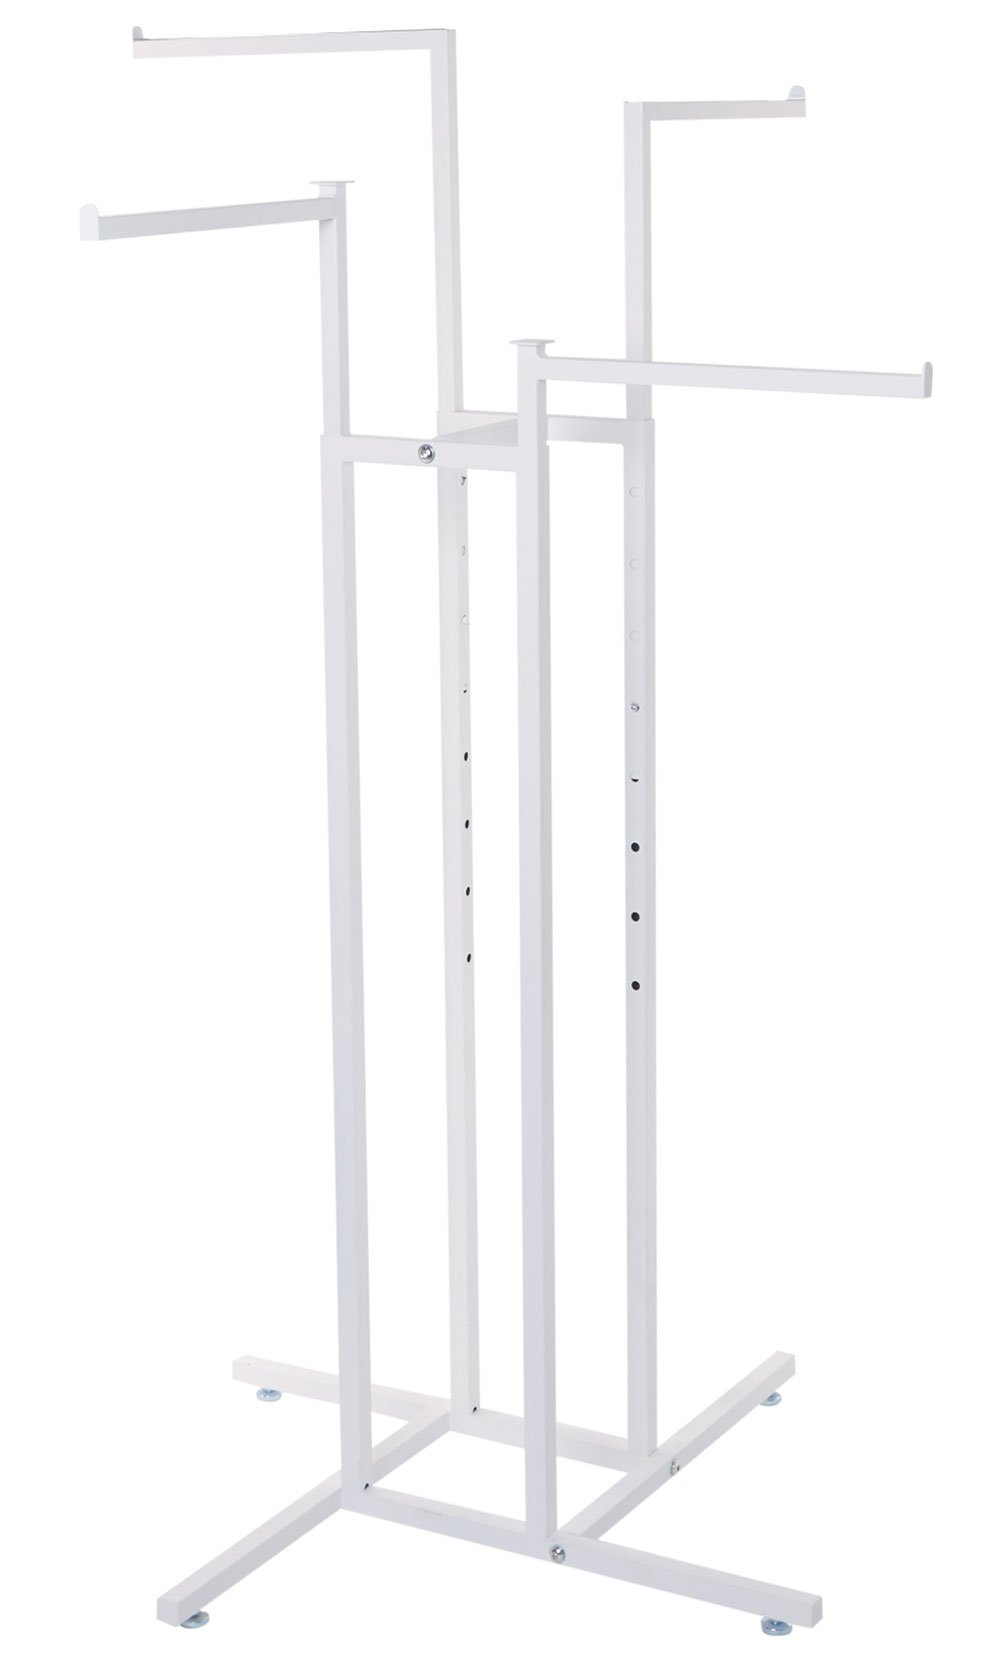 SSWBasics White 4-Way Clothing Rack with Straight Arms